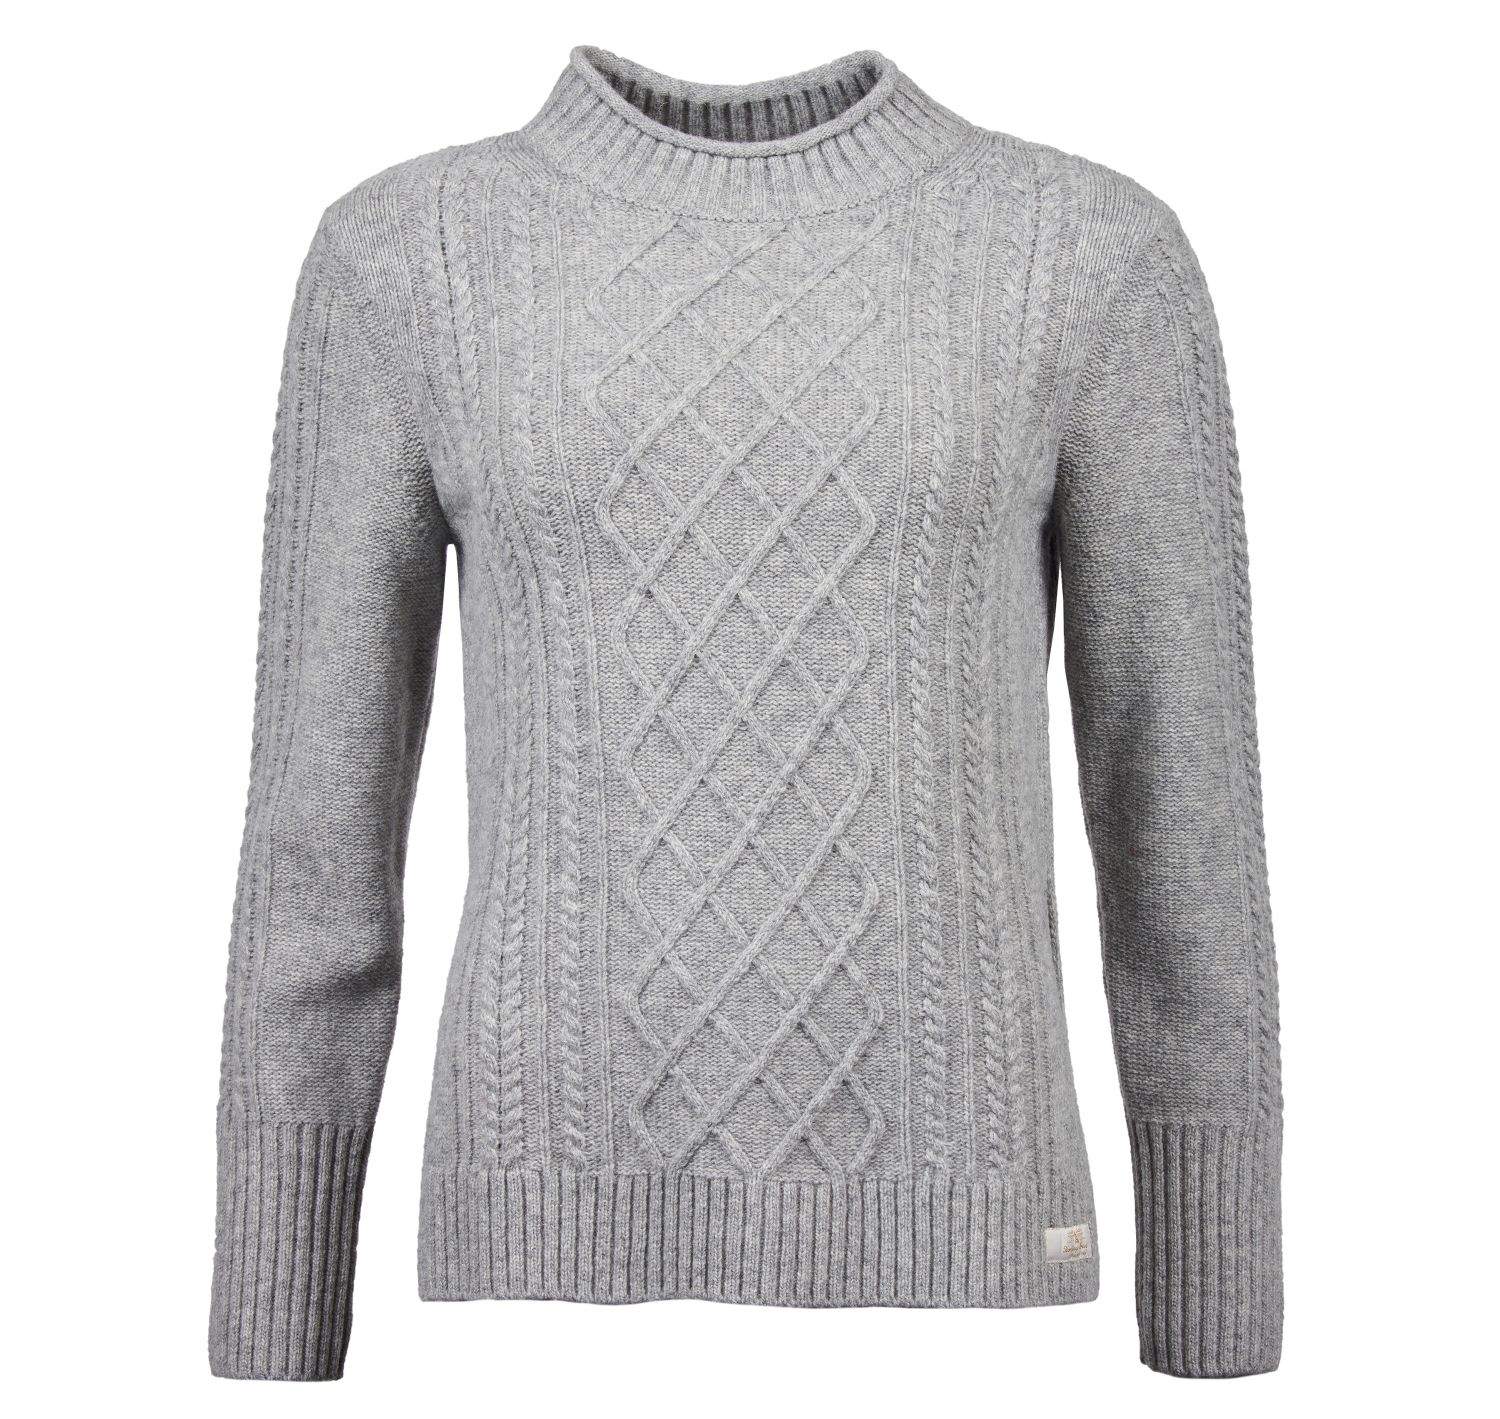 Barbour Barbour Tyneside Knit Sweater Grey Barbour International